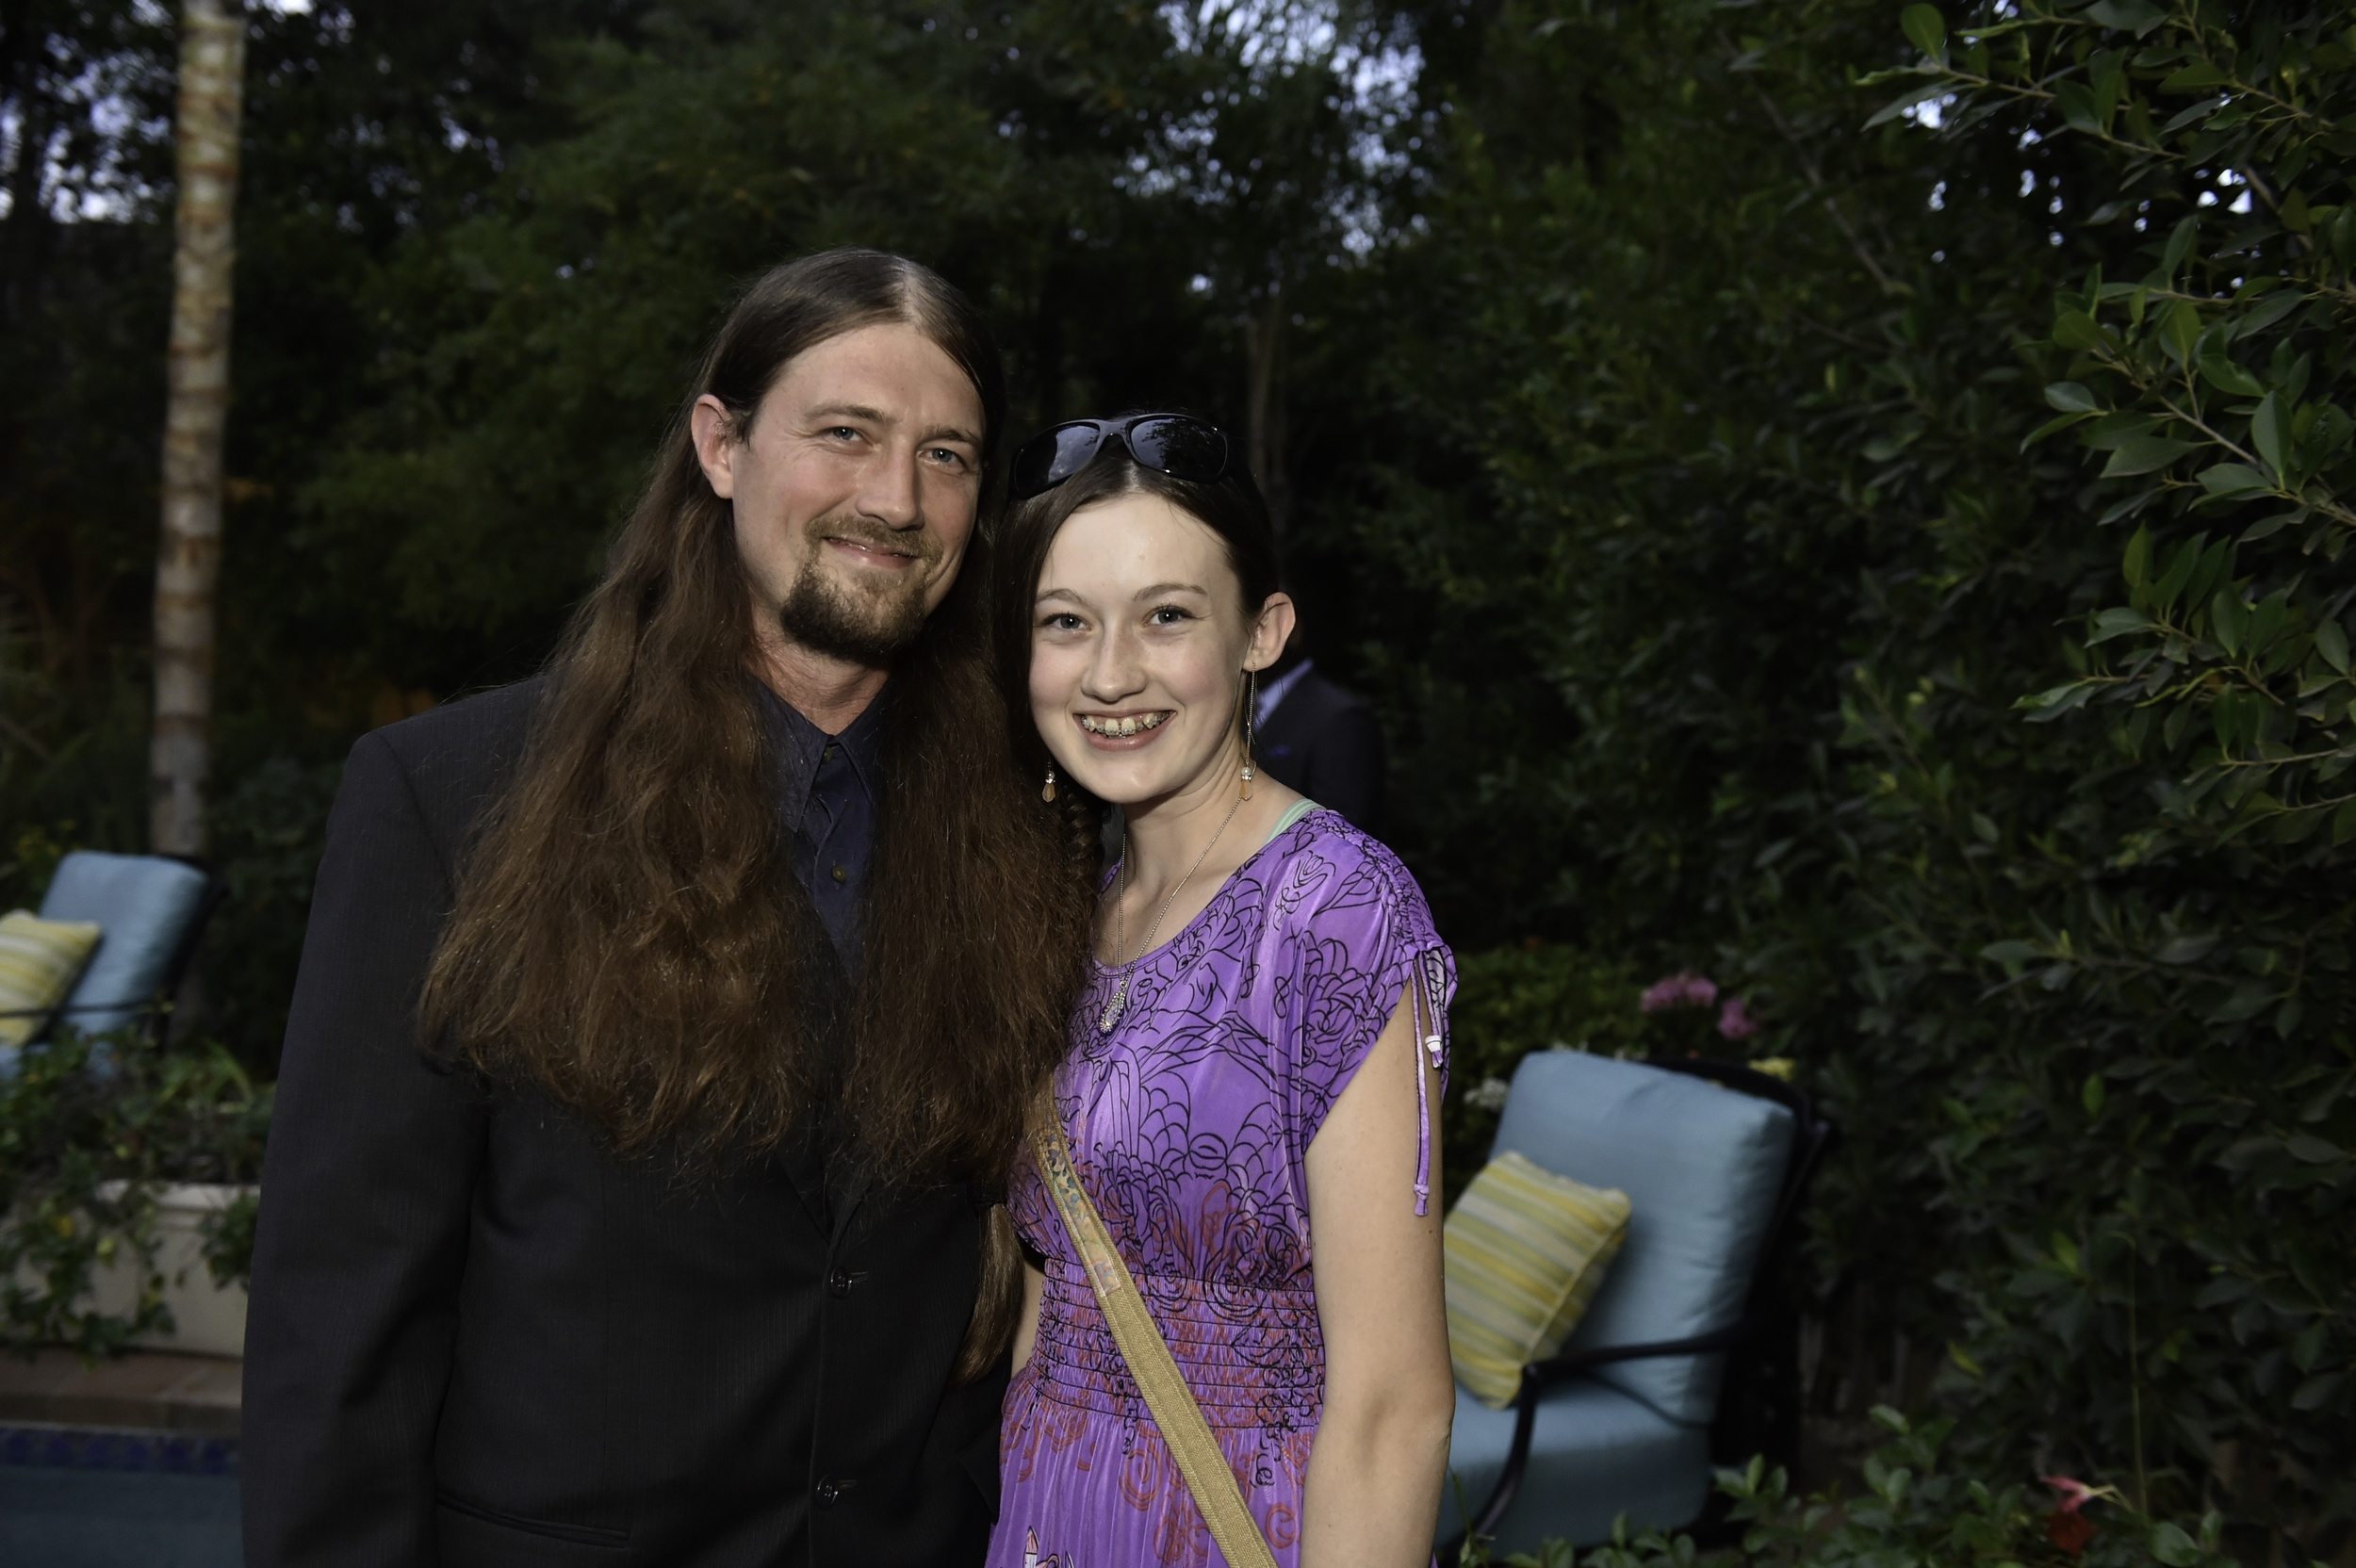 Caption: Oregon subject McKenna from Future American President with her father at the Kickstarter launch event for FUTURE AMERICAN DREAM. Photograph by Ronald Pollard.